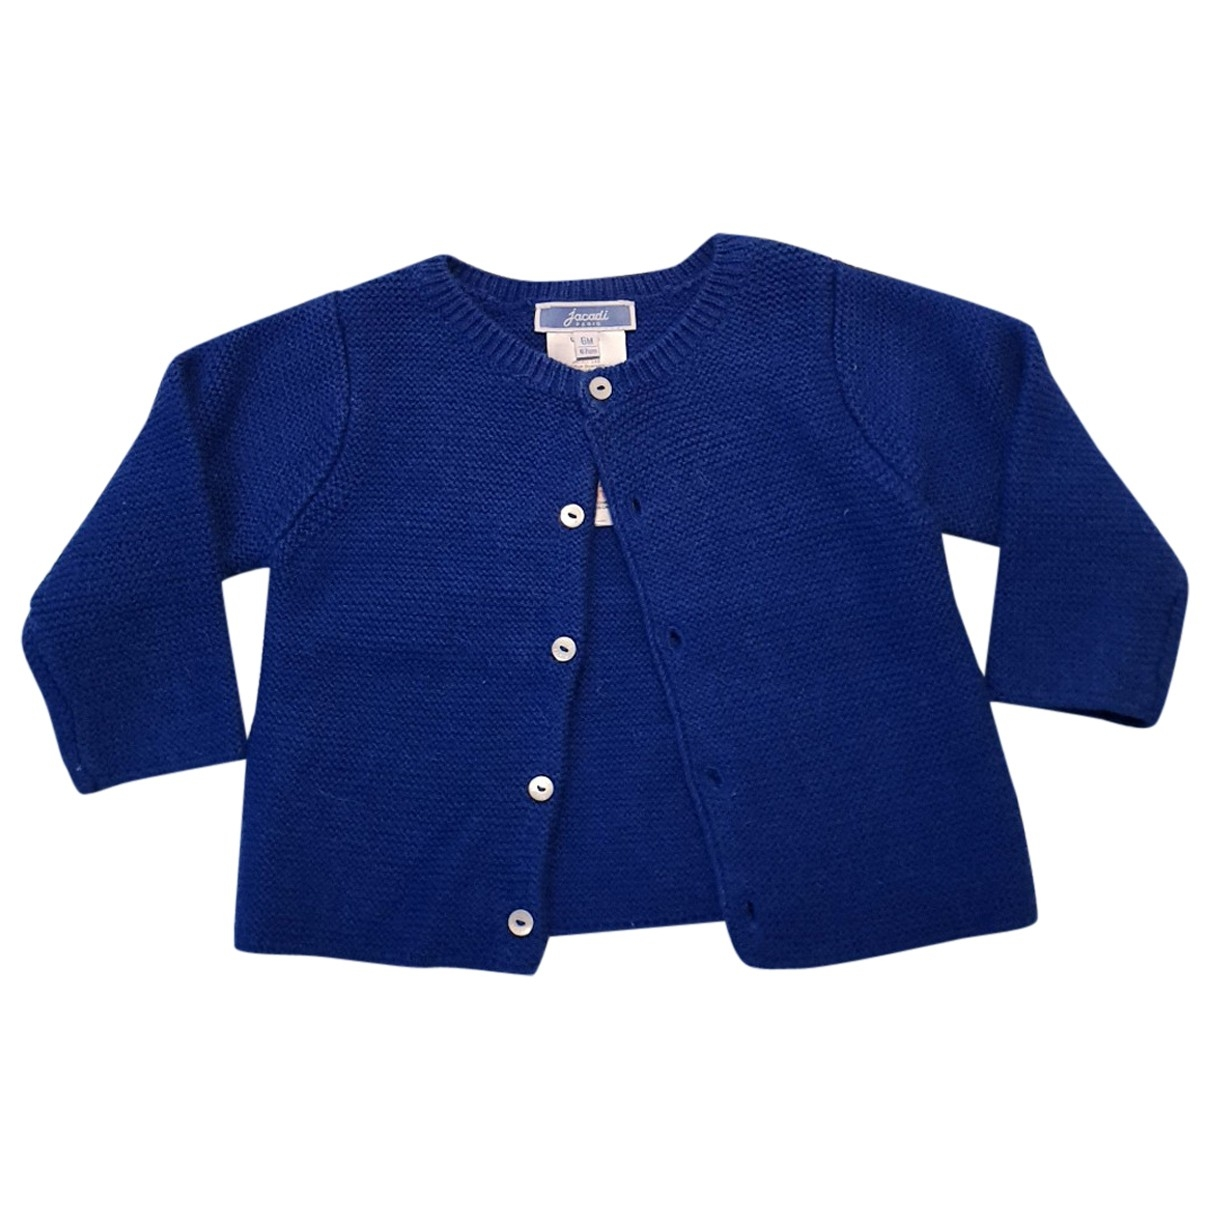 Jacadi \N Blue Wool Knitwear for Kids 6 months - up to 67cm FR